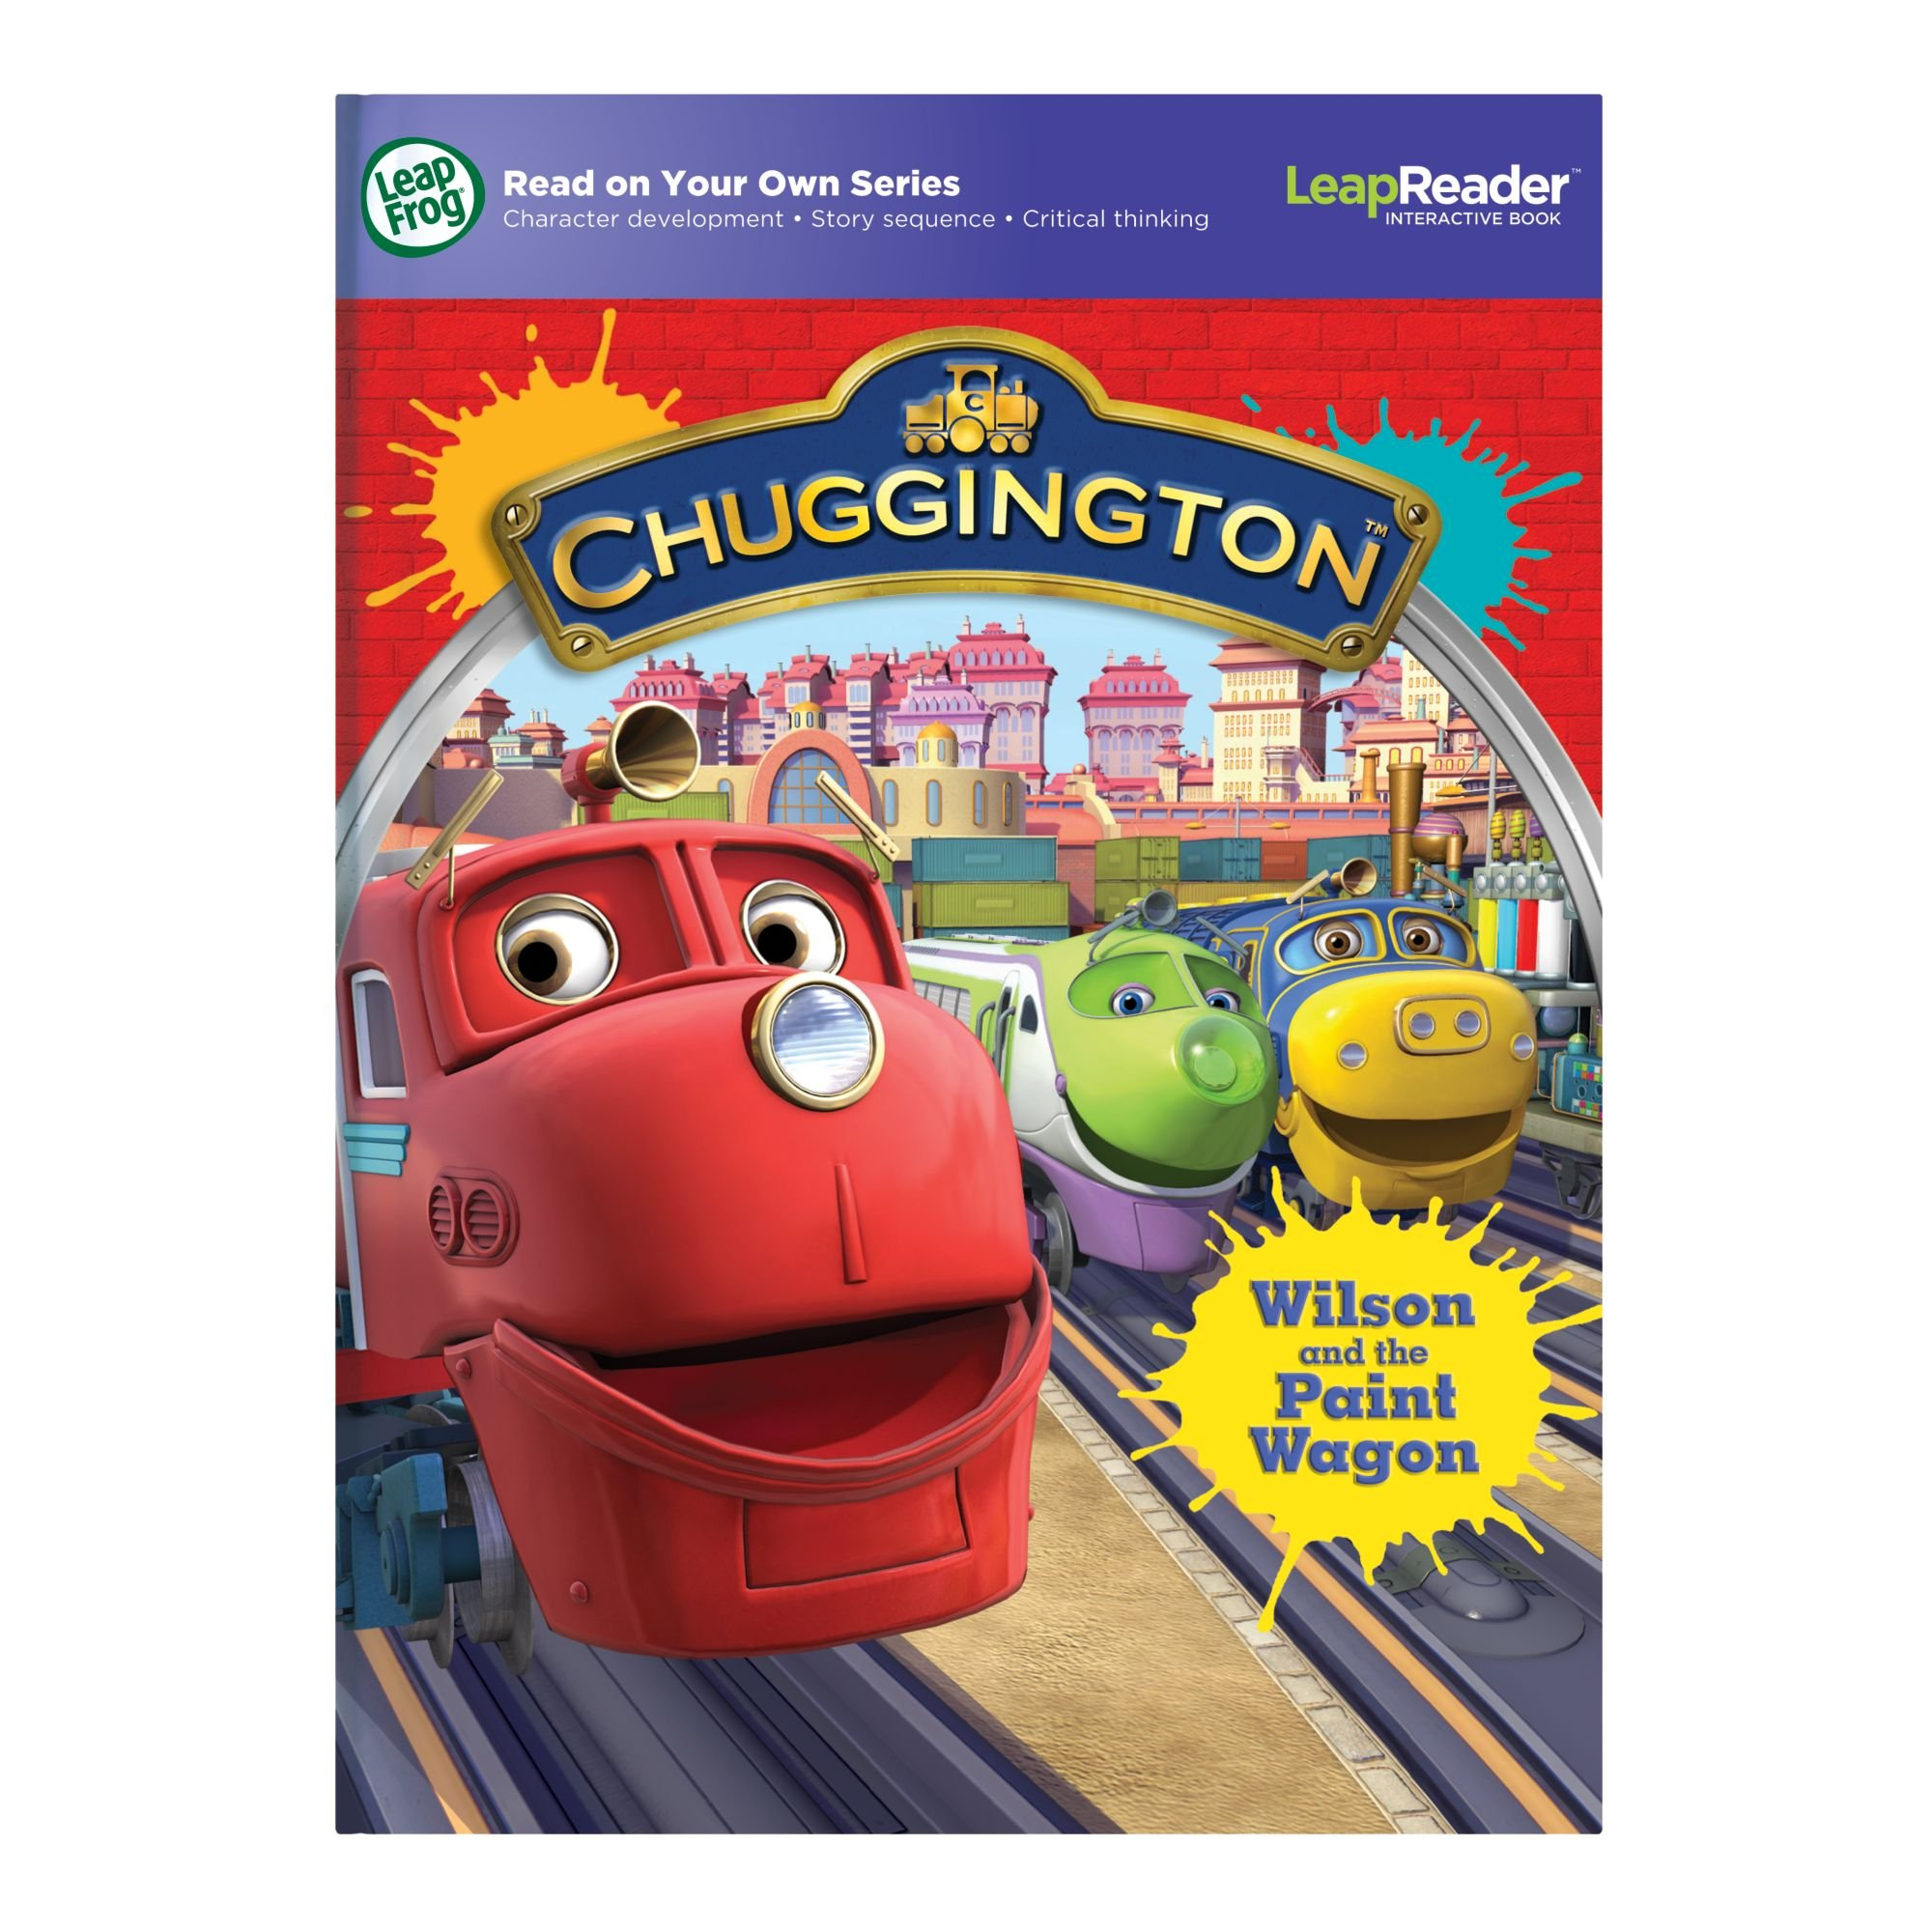 LeapFrog LeapReader Book: Chuggington: Wilson and the Paint Wagon (works with Tag) by LeapFrog (Image #8)